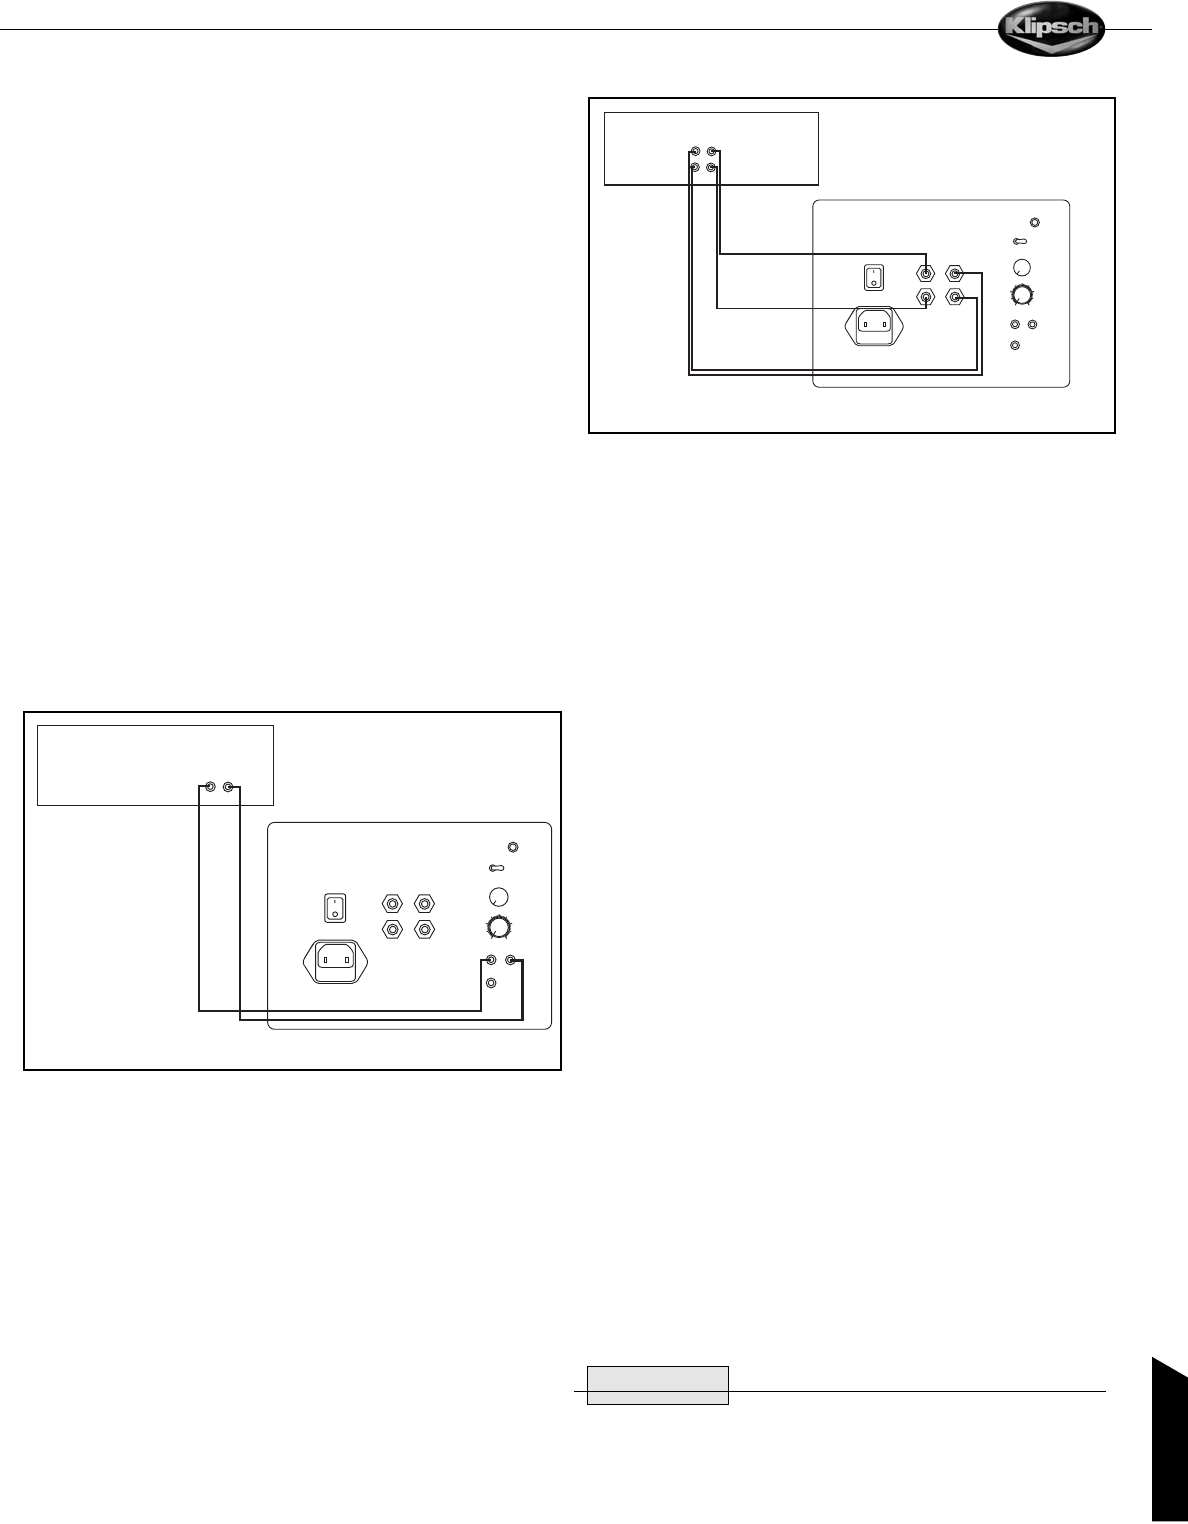 Klipsch Reference Sub käyttöohje (24 sivut) on klipsch reference wiring diagram, jbl wiring diagram, 6 pin din cable connection diagram, infinity dual voice coil wiring diagram, speakers wiring diagram, schematic circuit diagram, klipsch vf 35 tower speaker, klipsch synergy diagram 12, klipsch promedia 2 1 power switch, 5 channel amp wiring diagram, 2 channel amp wiring diagram, sub woofer wiring diagram, klipsch 2 1 sub woofer pin out,